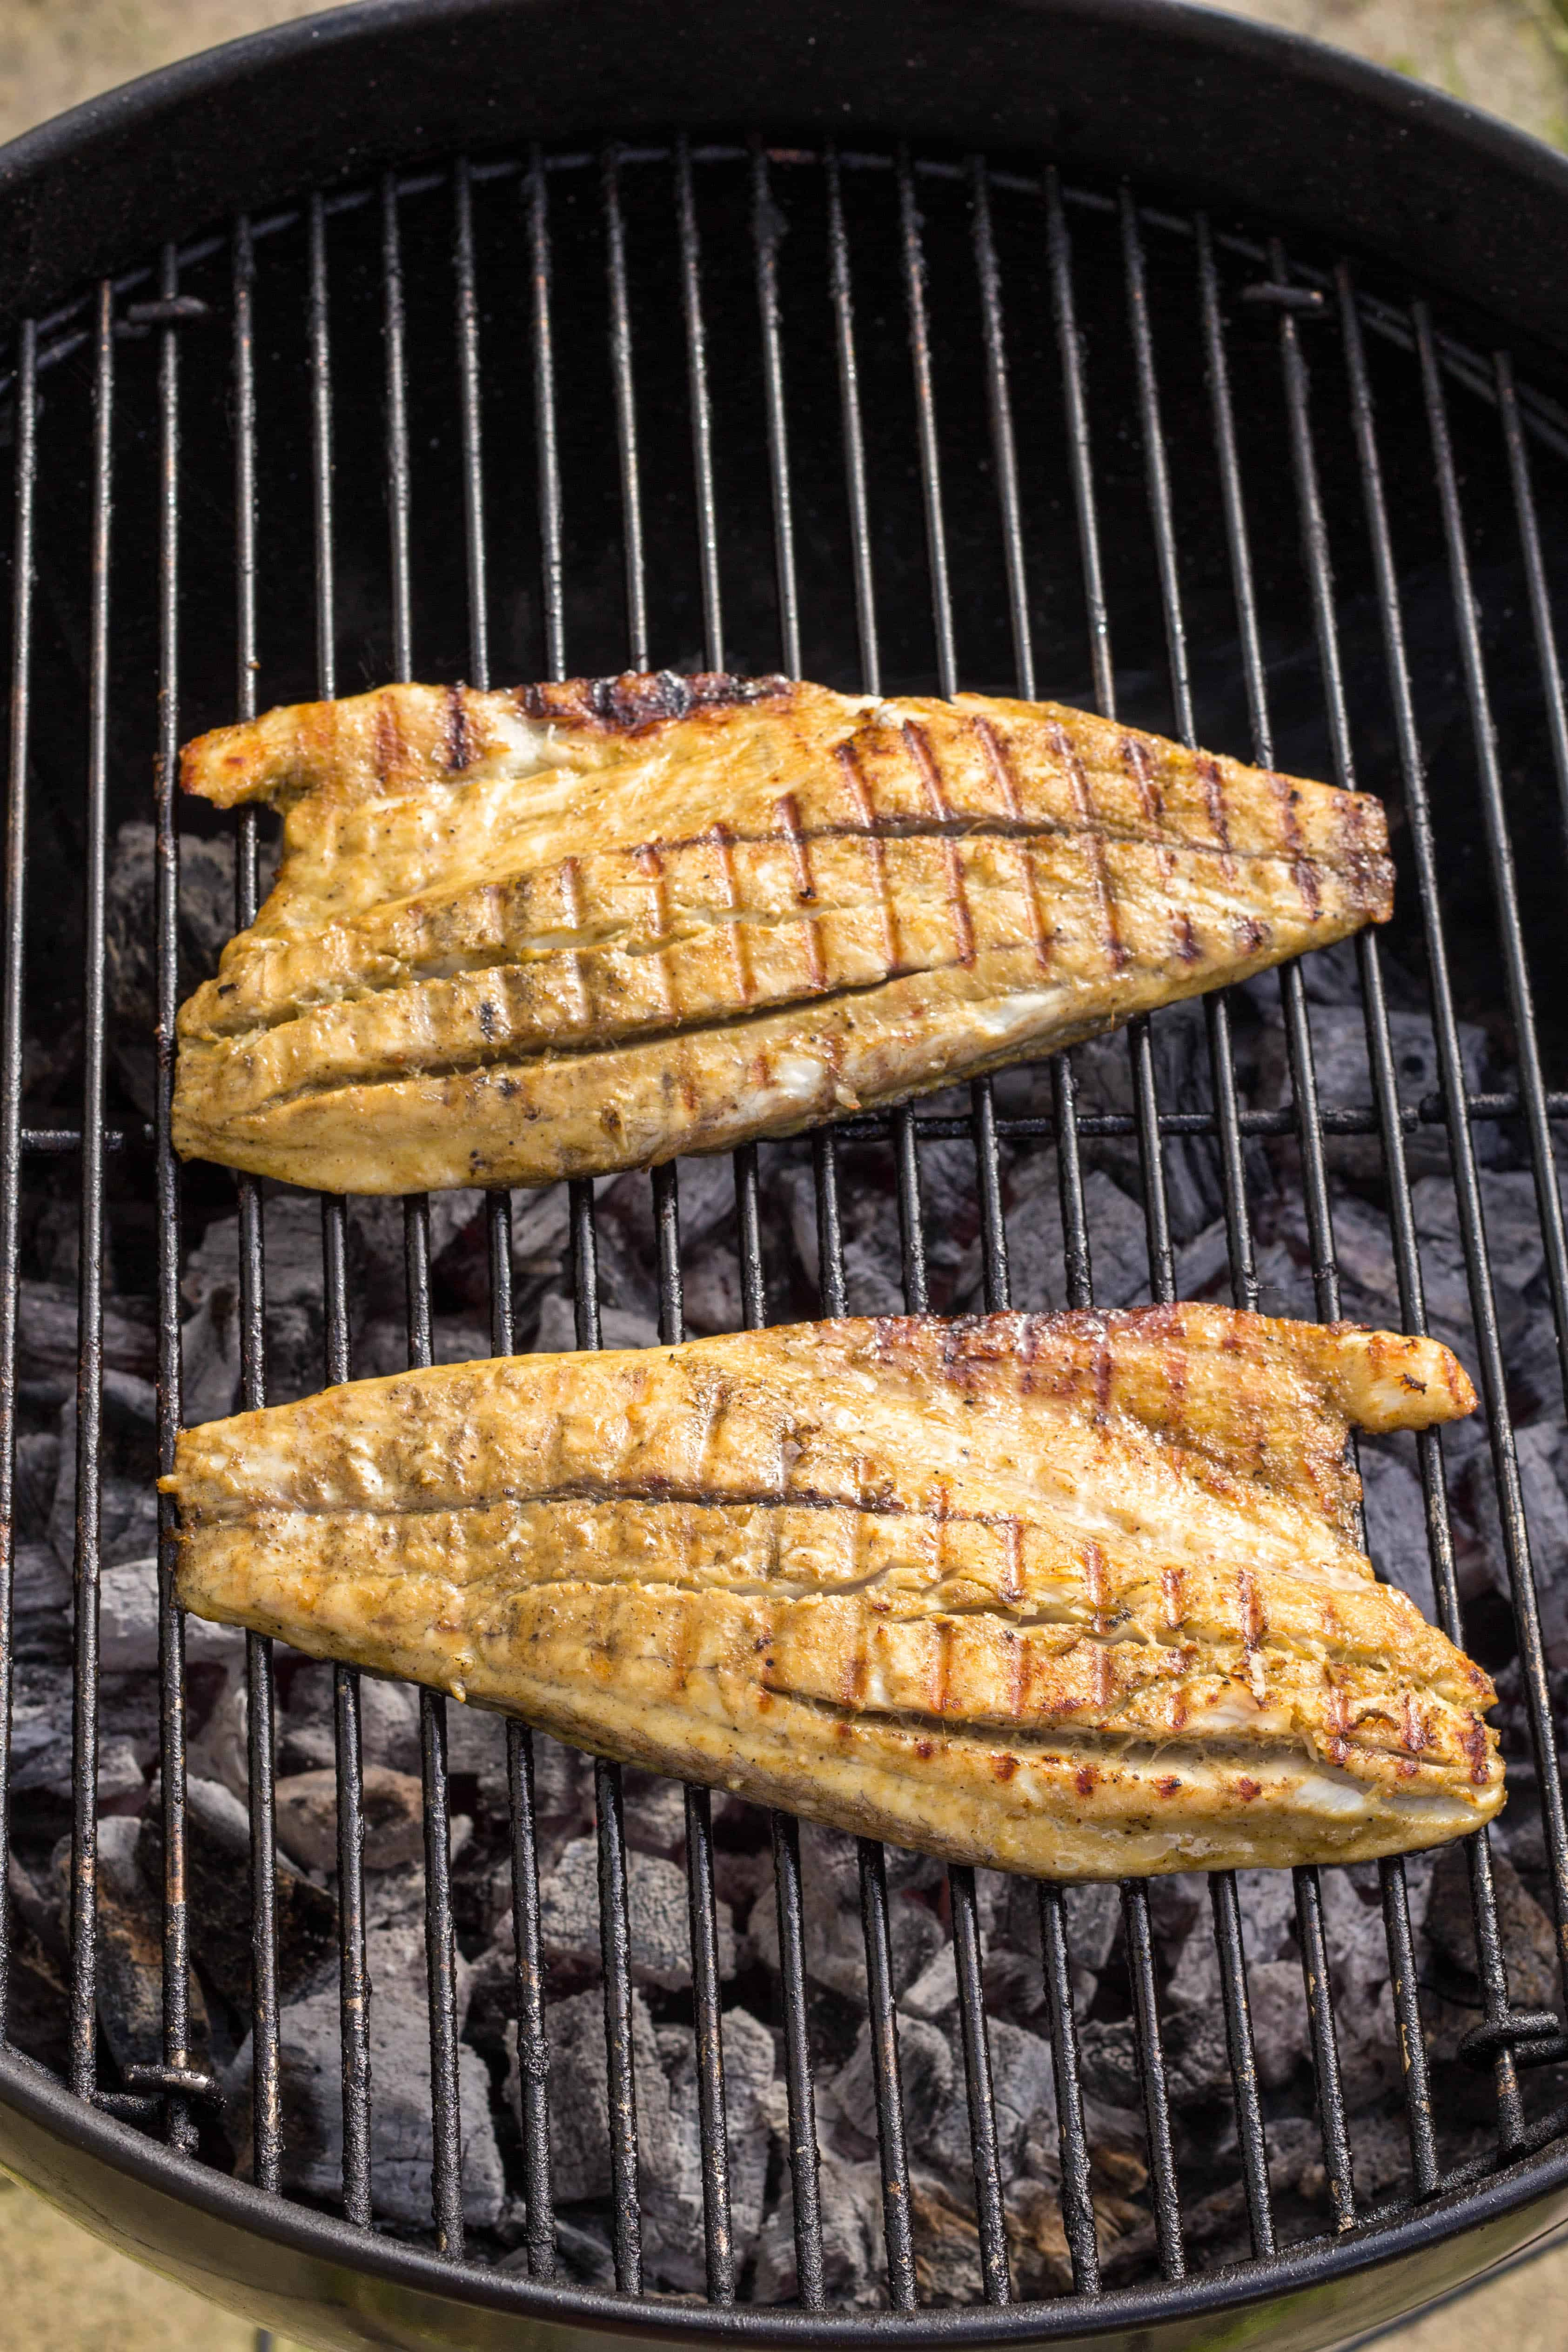 Two barramundi fillets on a charcoal grill.